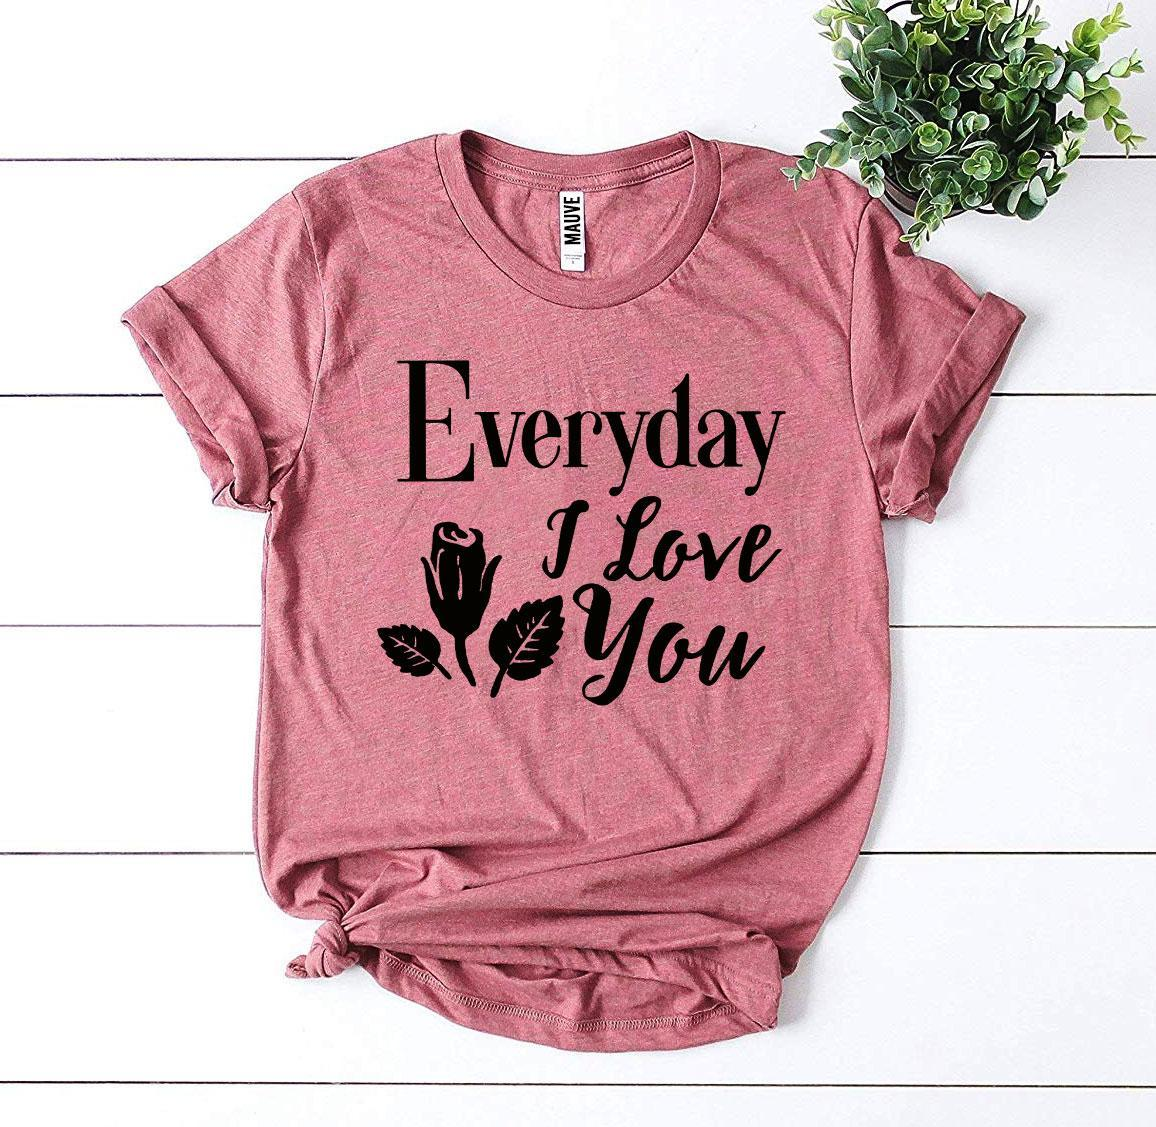 Everyday I Love You T-shirt